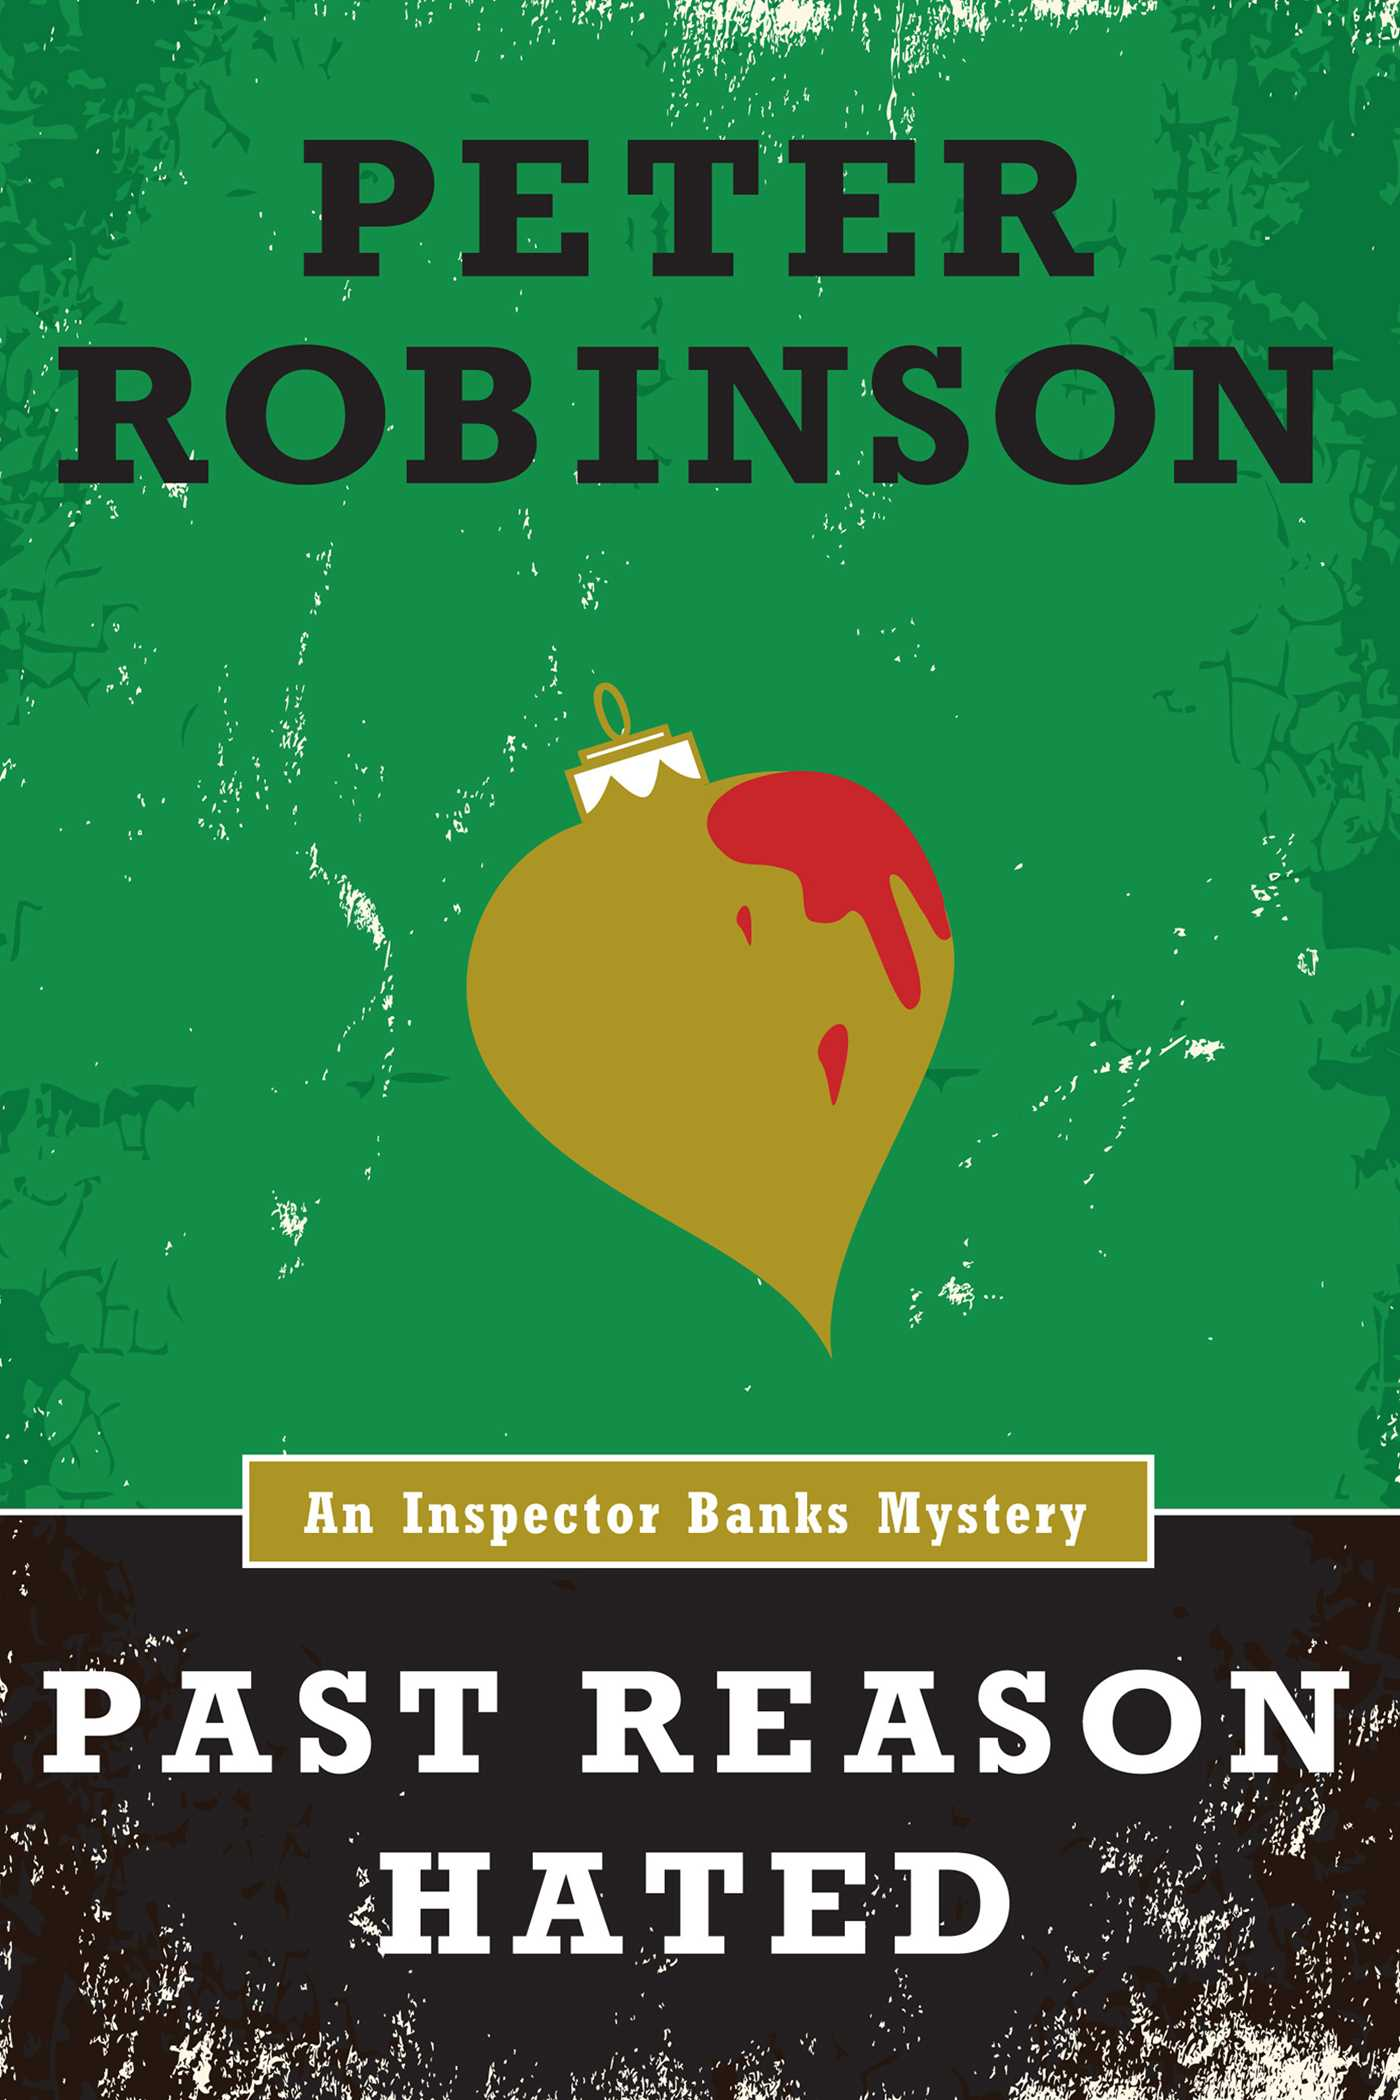 Past-reason-hated-an-inspector-banks-mystery-9781476745244_hr